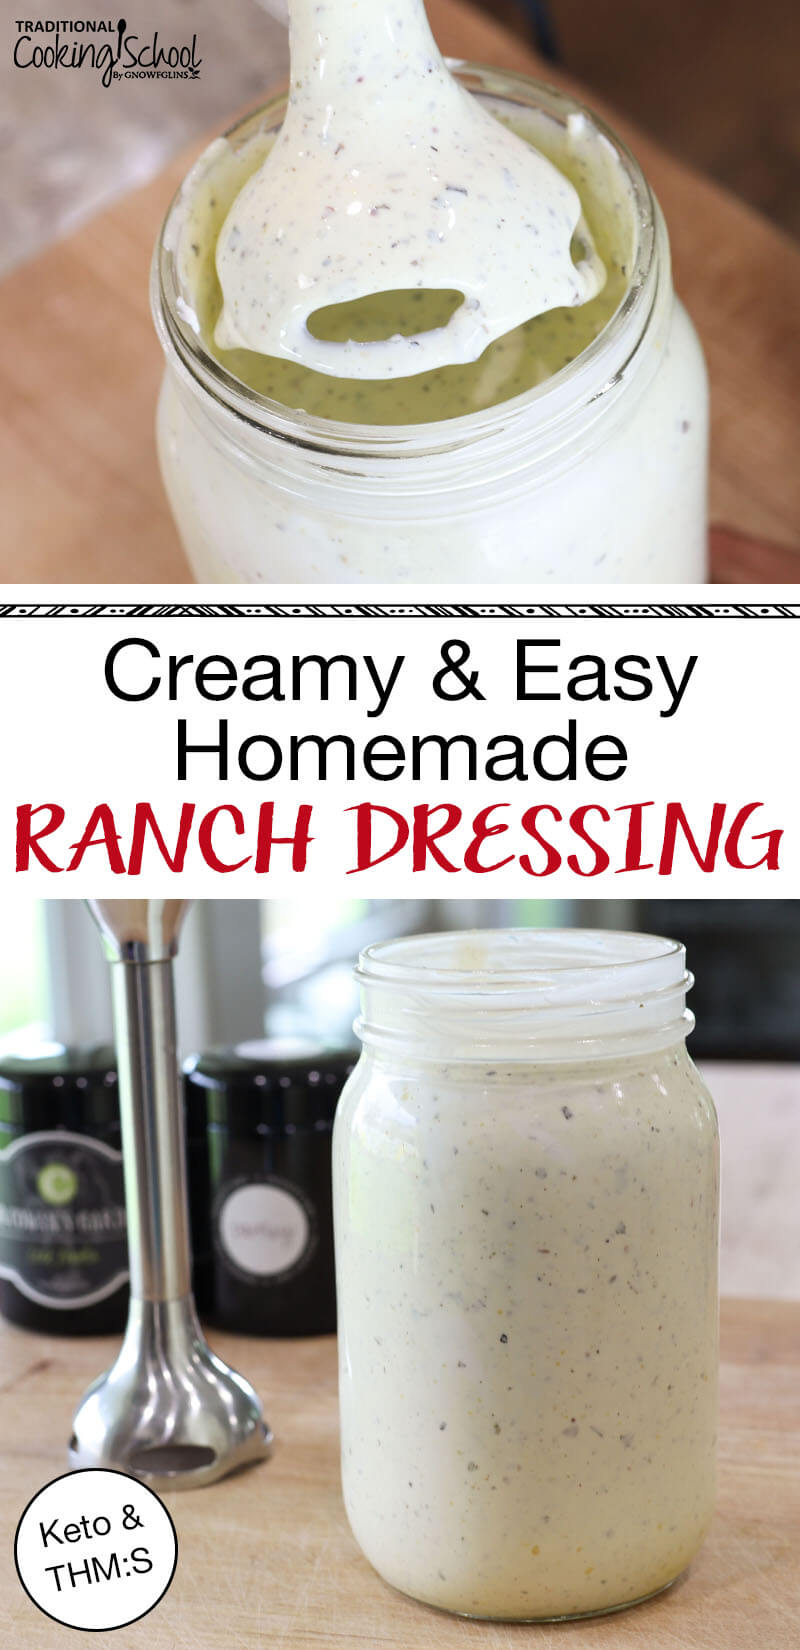 "photo collage of making creamy ranch dressing at home with a stick blender and dried herbs, with text overlay: ""Creamy & Easy Homemade Ranch Dressing (Keto & THM:S)"""